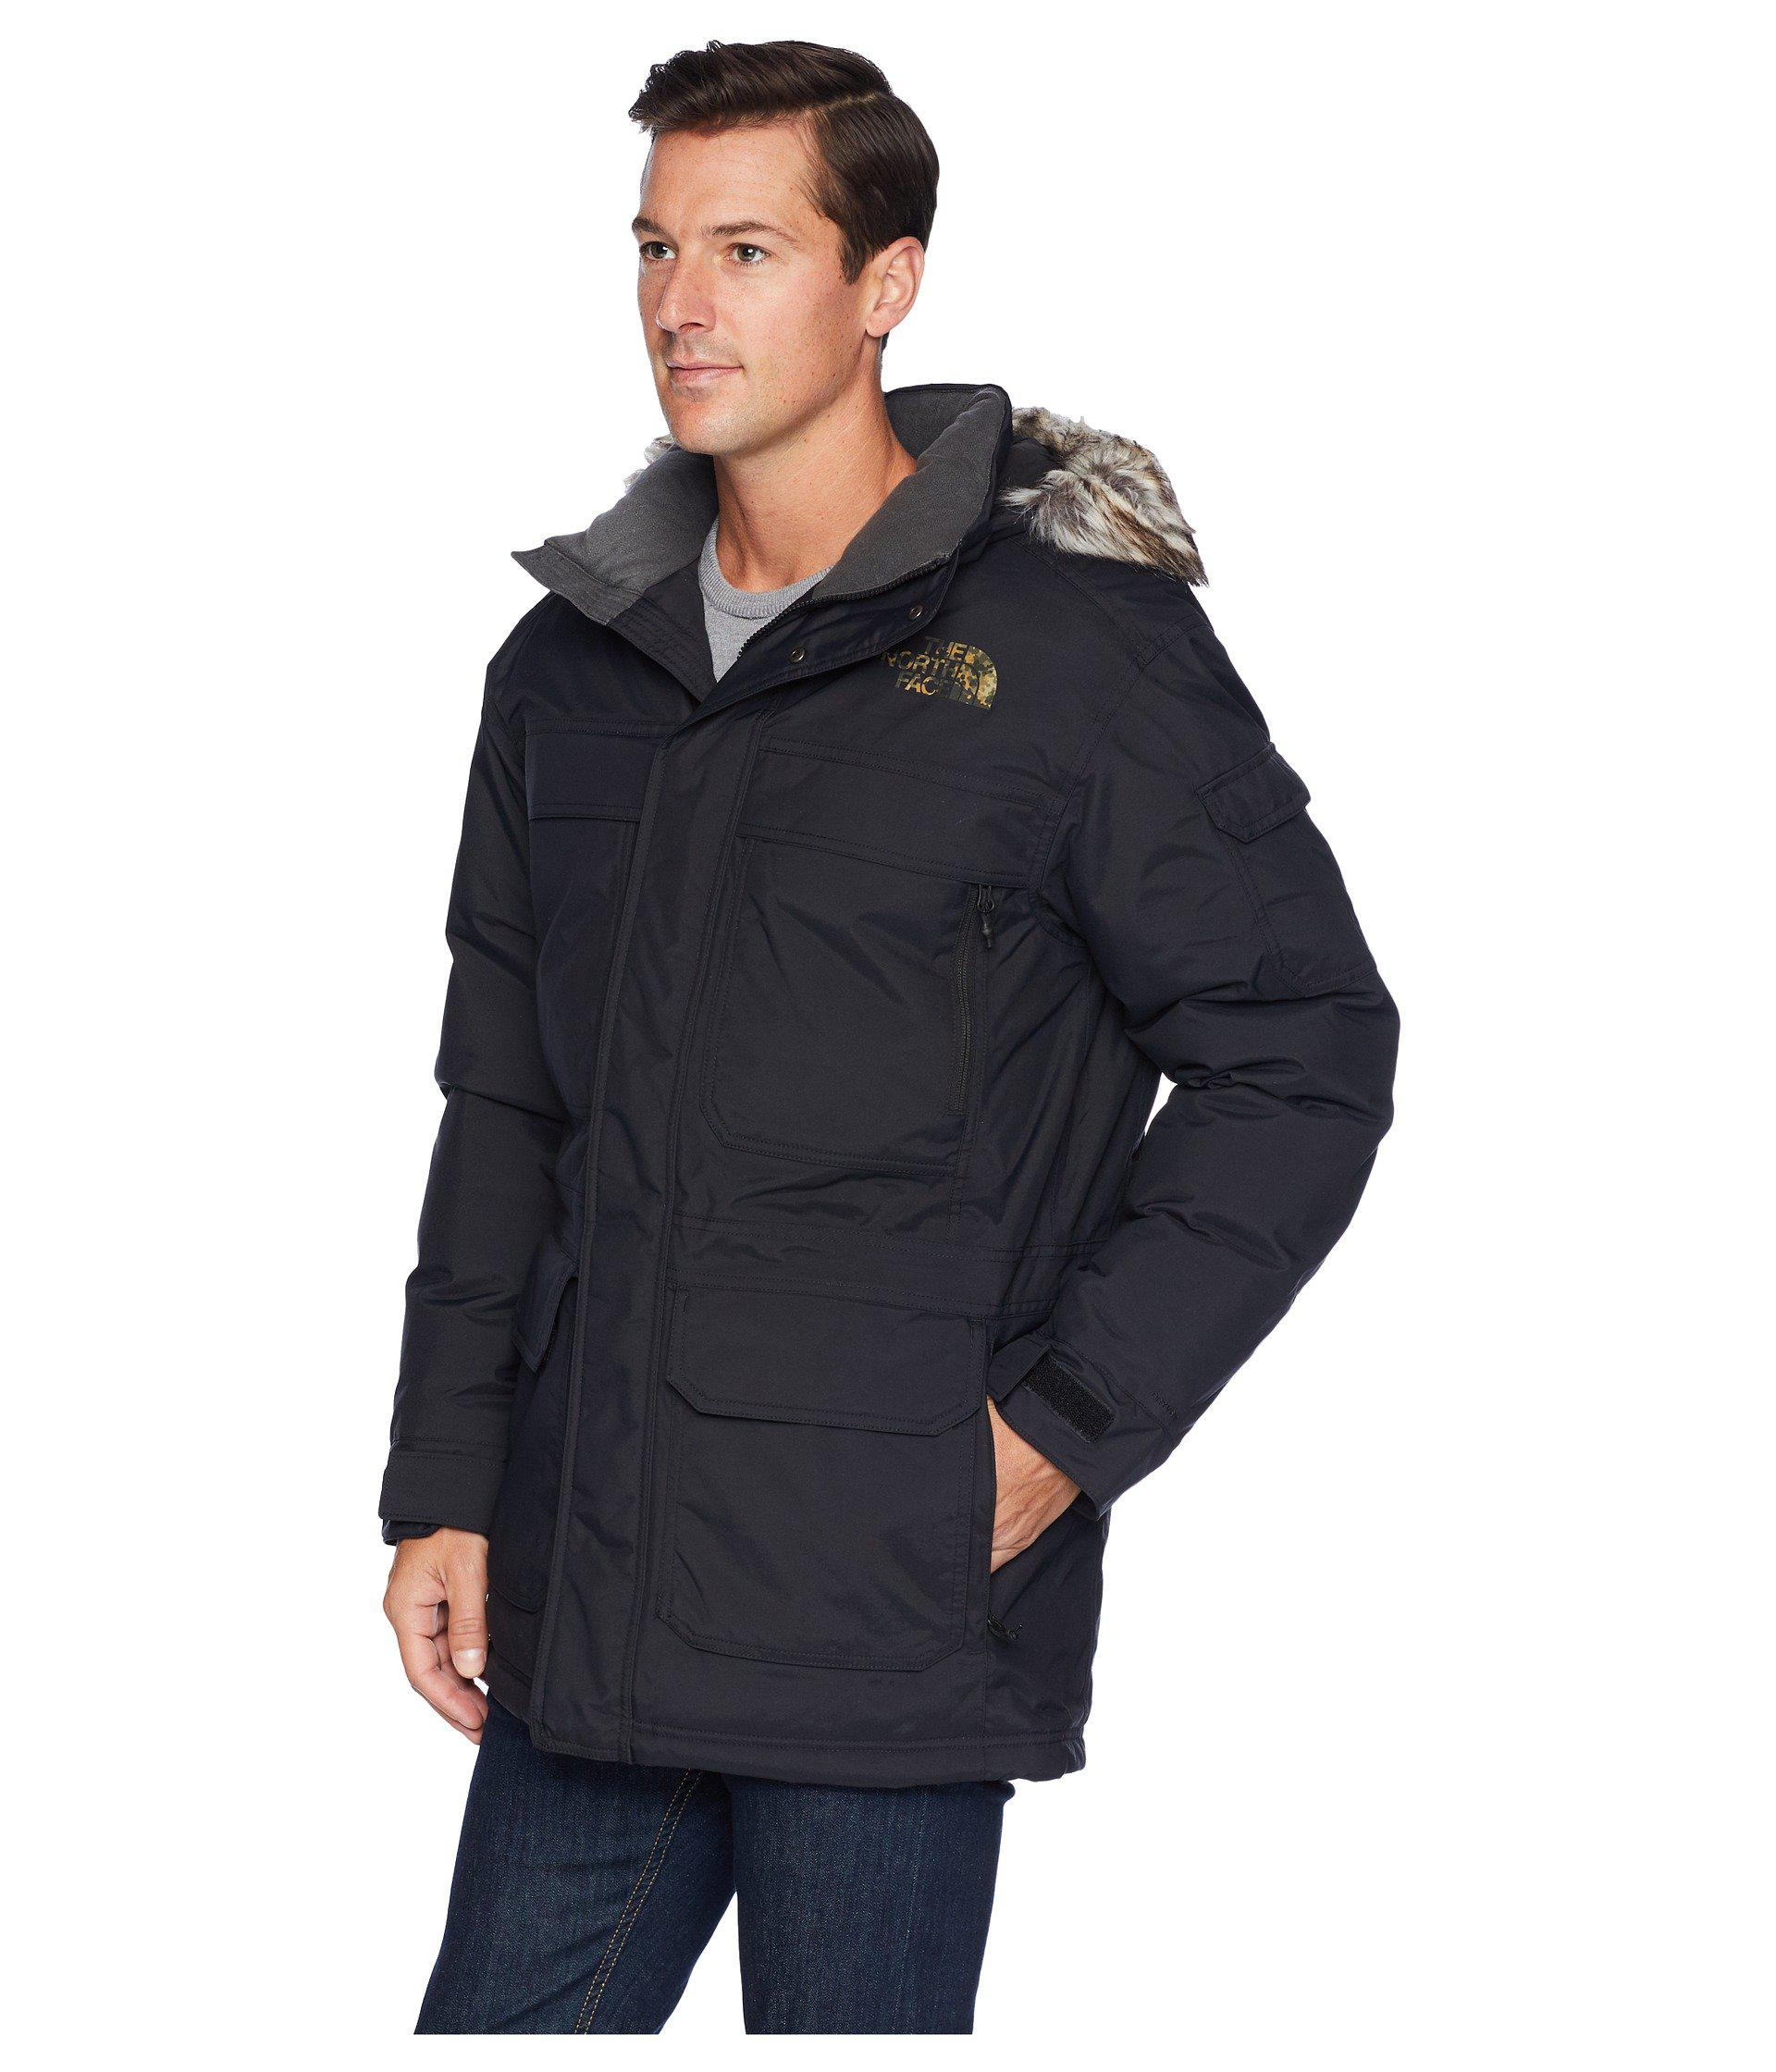 Lyst - The North Face Mcmurdo Parka Iii (new Taupe Green Combo) Men s Coat  in Black for Men 1ab1009cb3e2